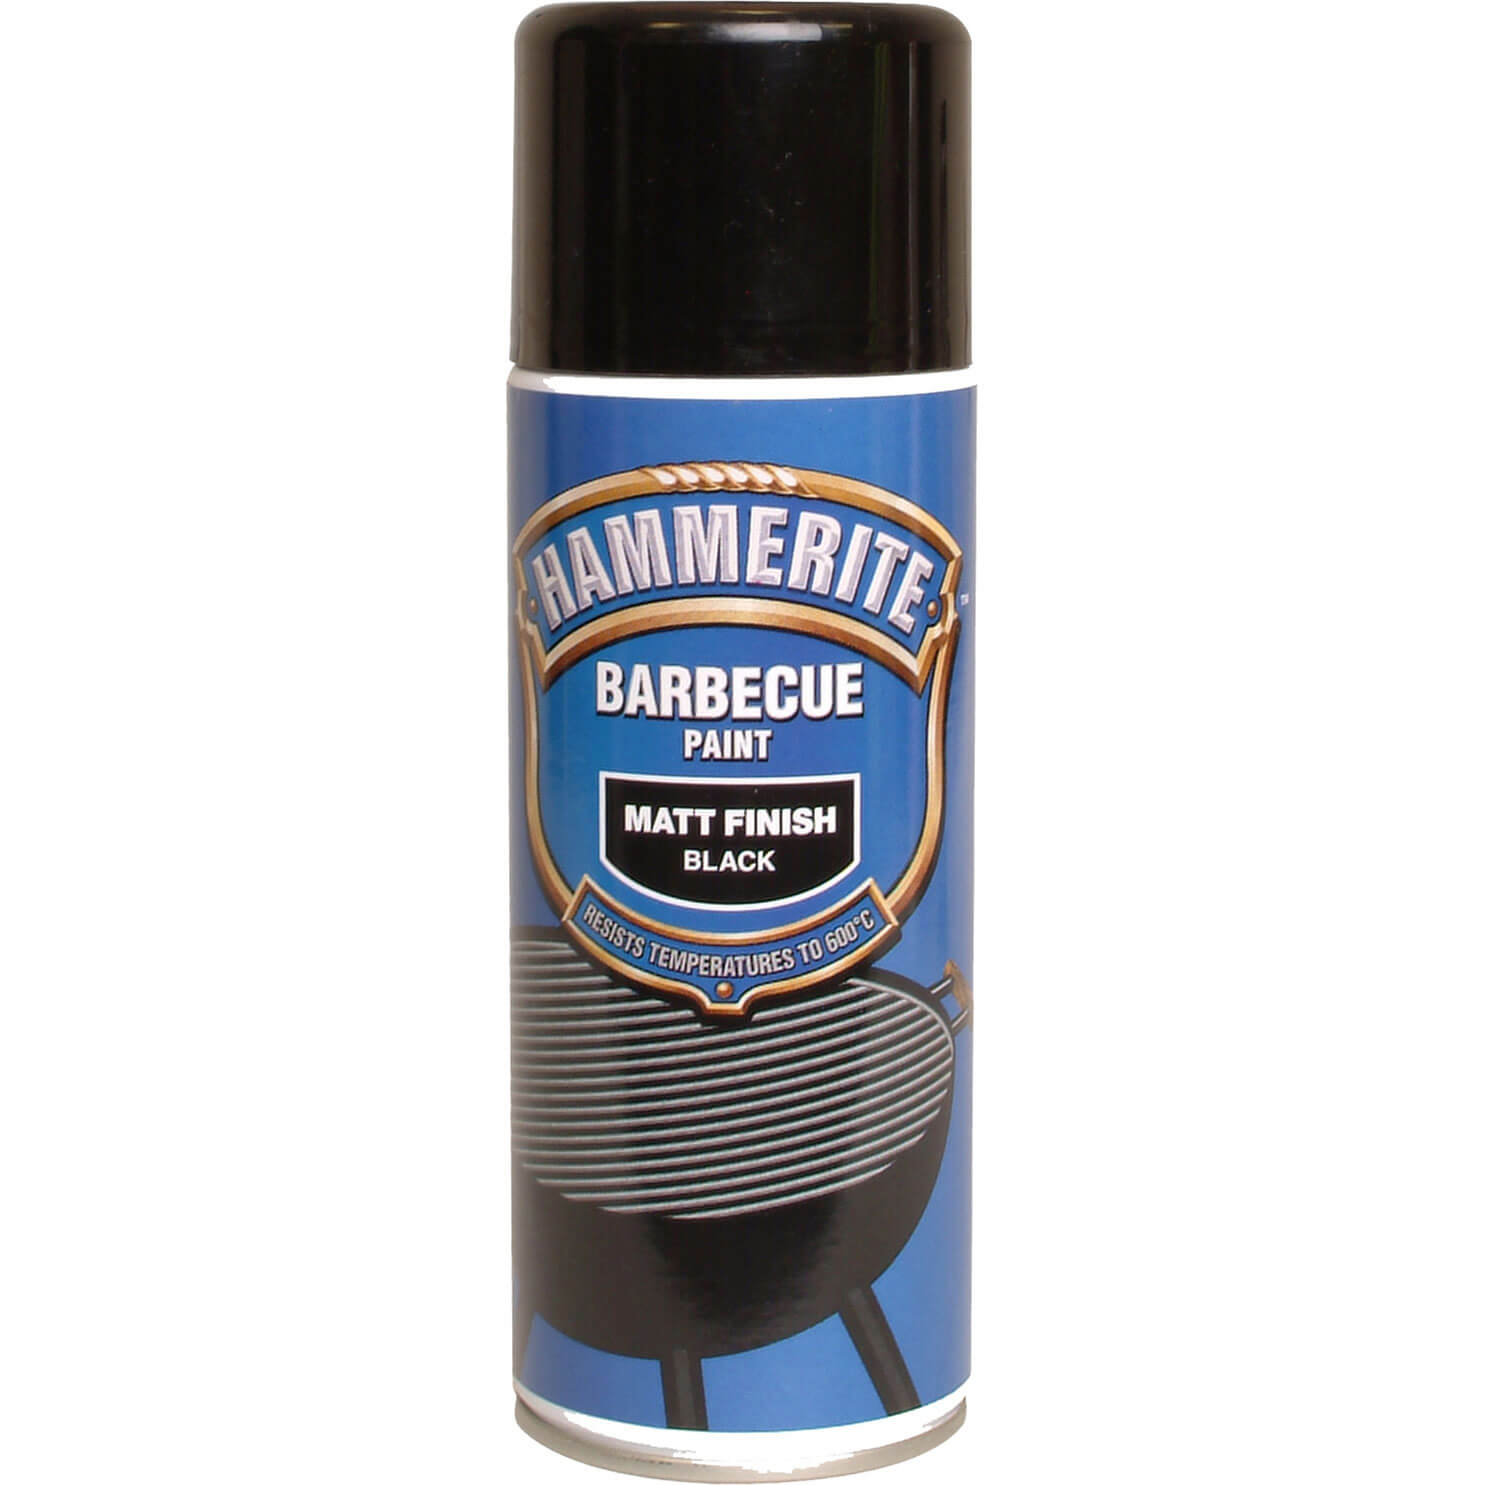 Hammerite BBQ Paint Aerosol 400ml Black Matt